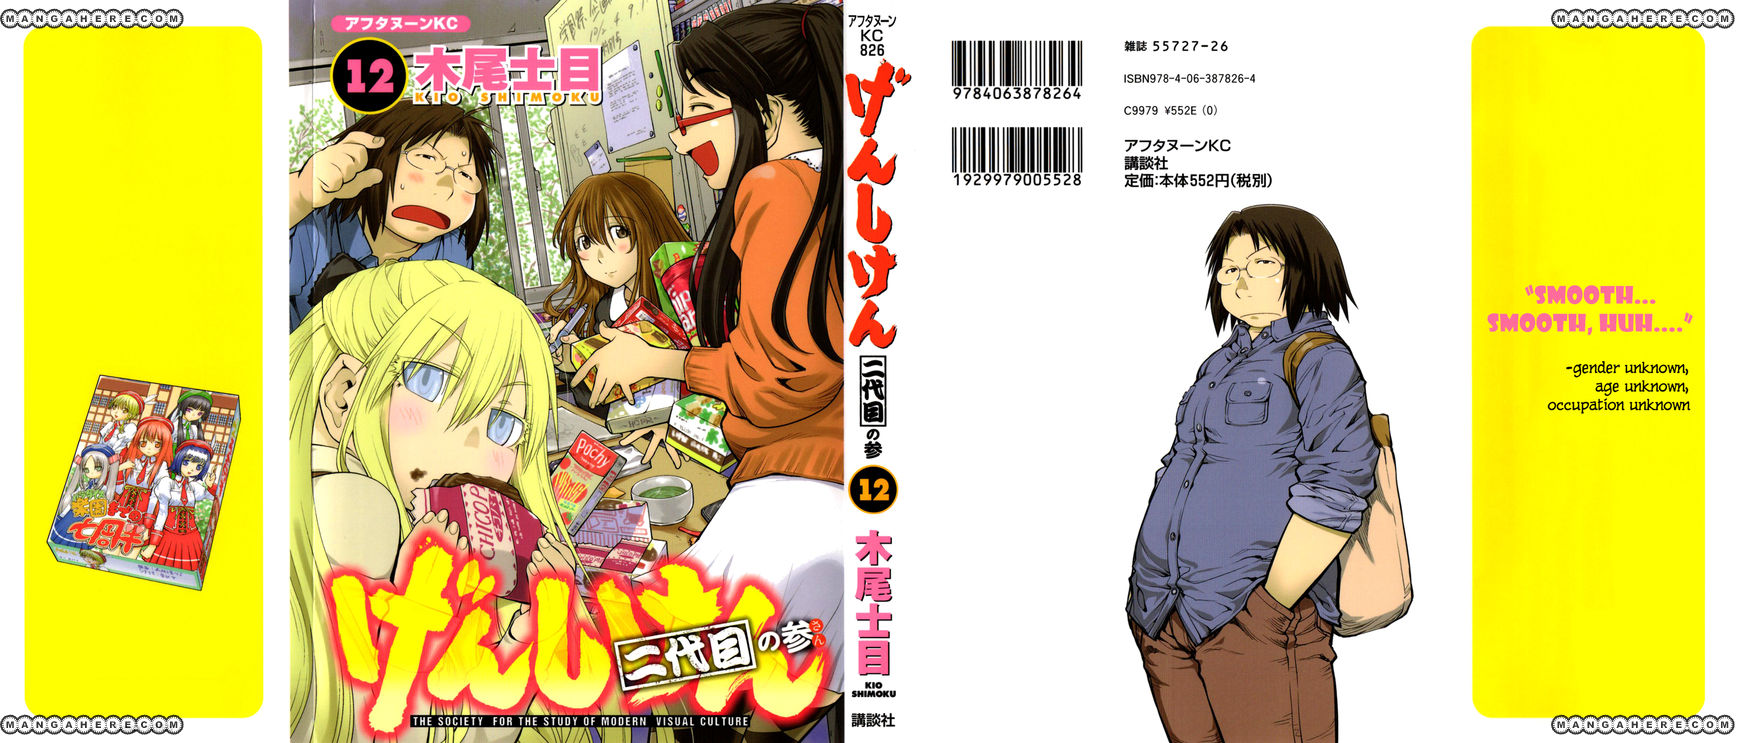 Genshiken Nidaime - The Society for the Study of Modern Visual Culture II 73.5 Page 1